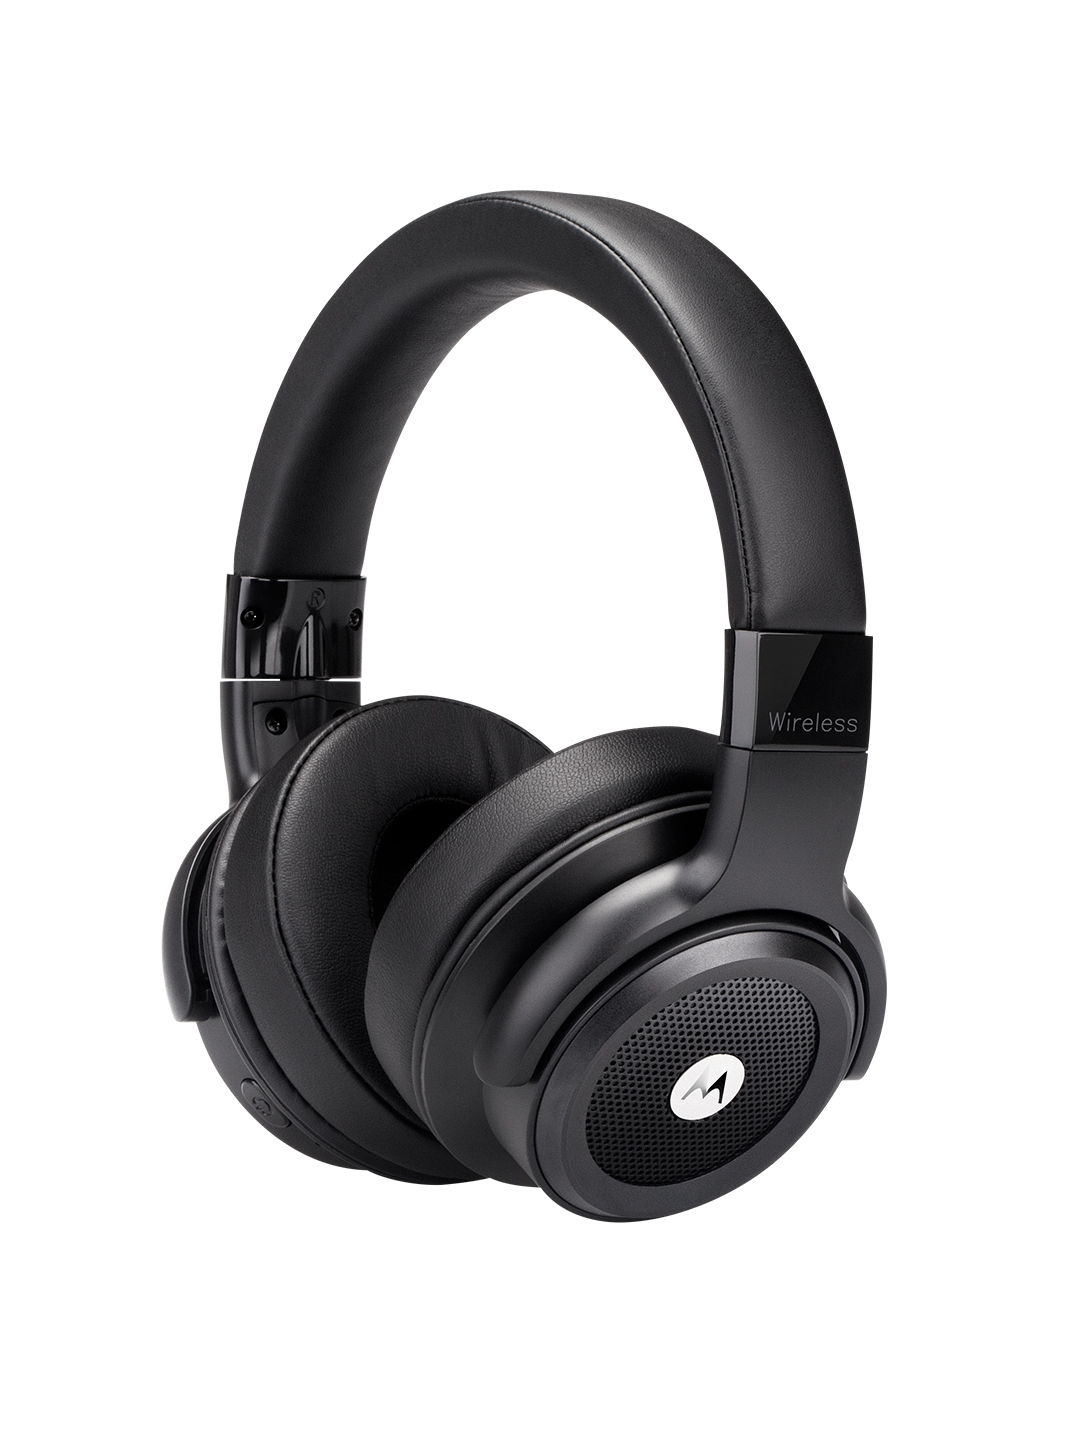 Motorola Black Escape 800 ANC Wireless Active Noise Cancellation Headphones with Google Assistant